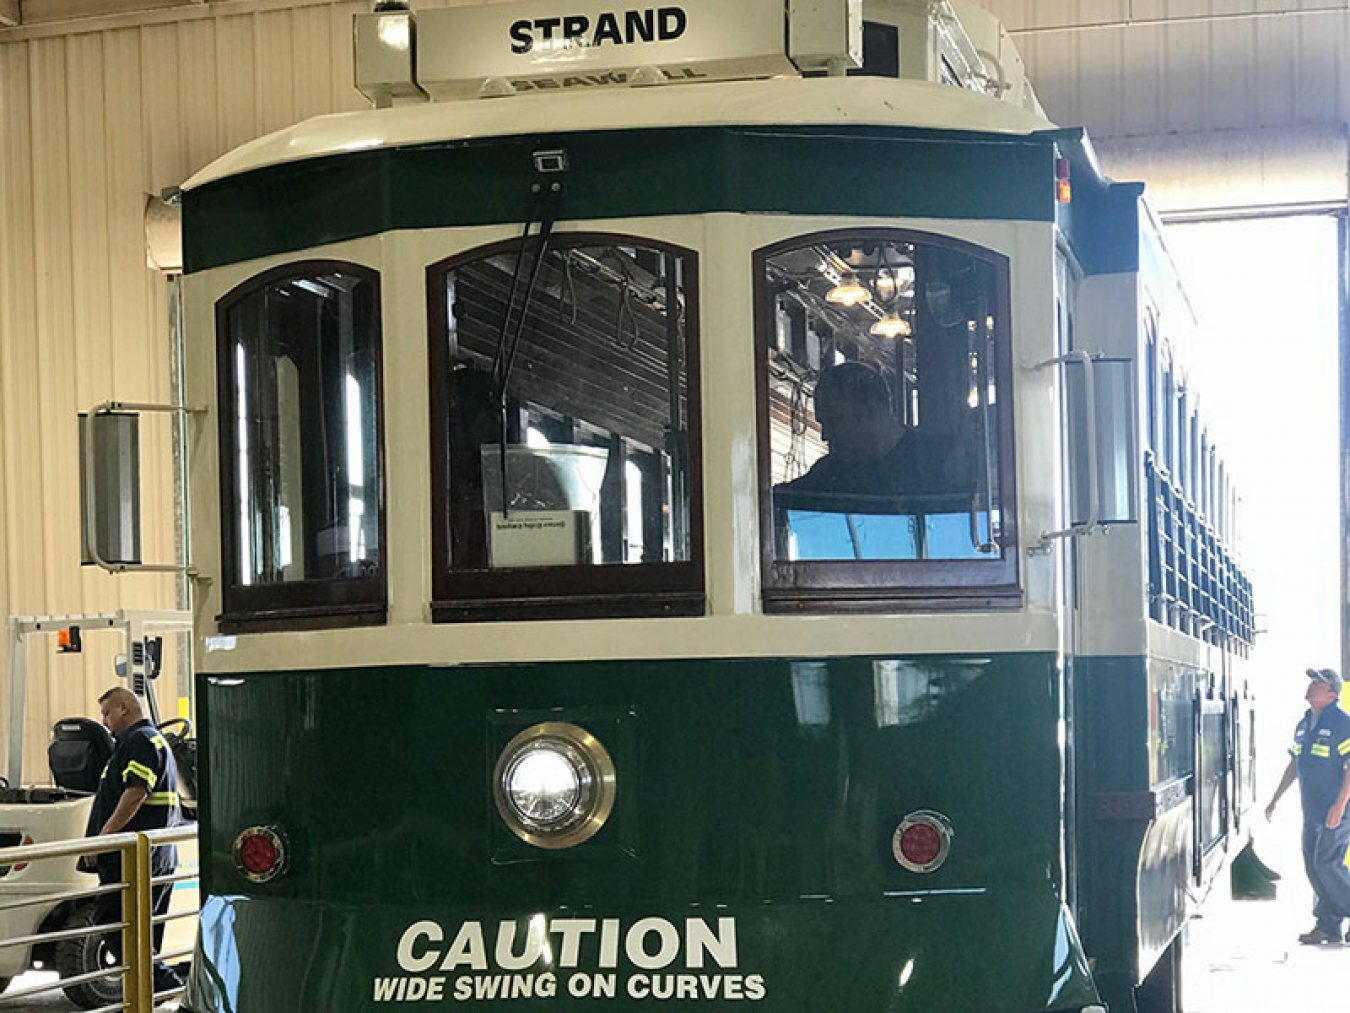 Trolley 501 at Trolley Barn